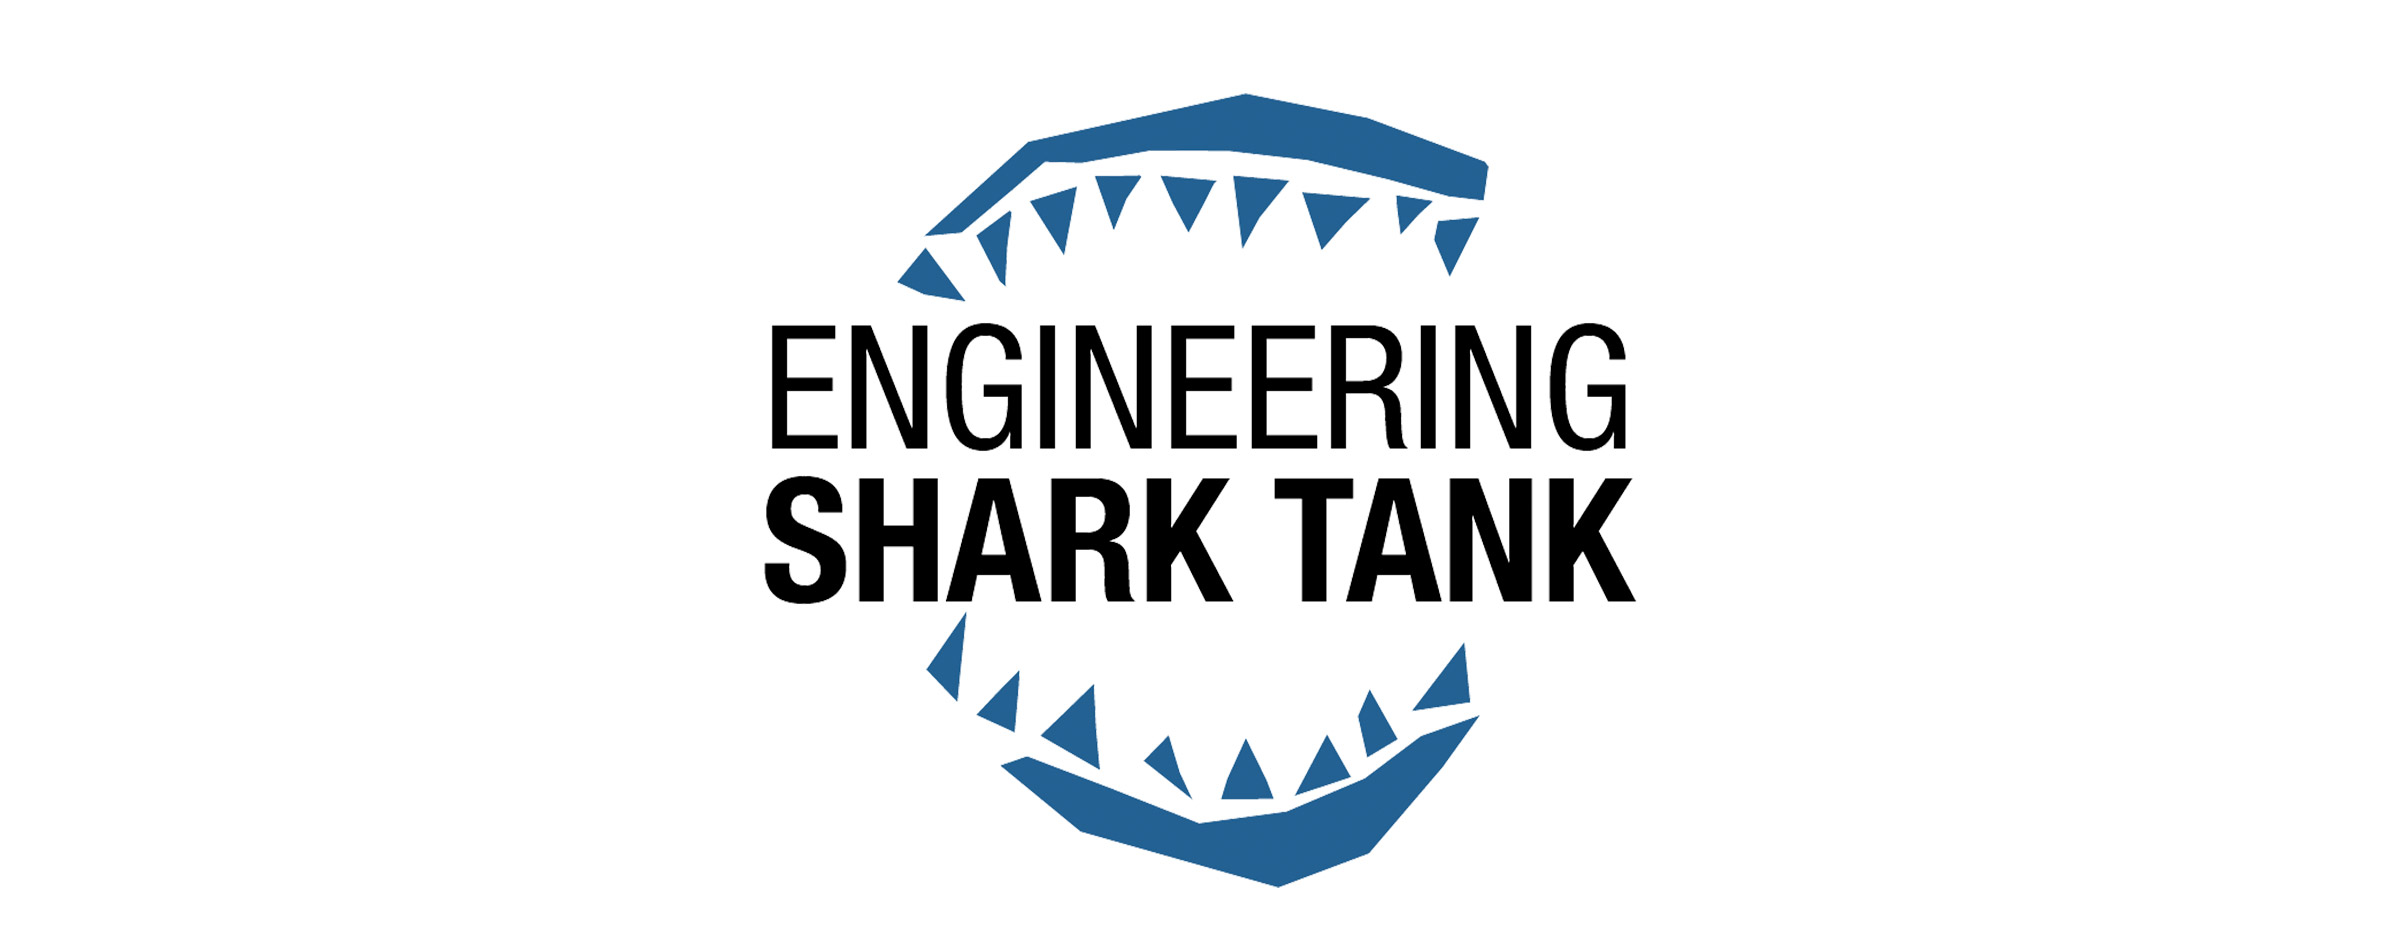 FAMU-FSU Engineering Shark Tank